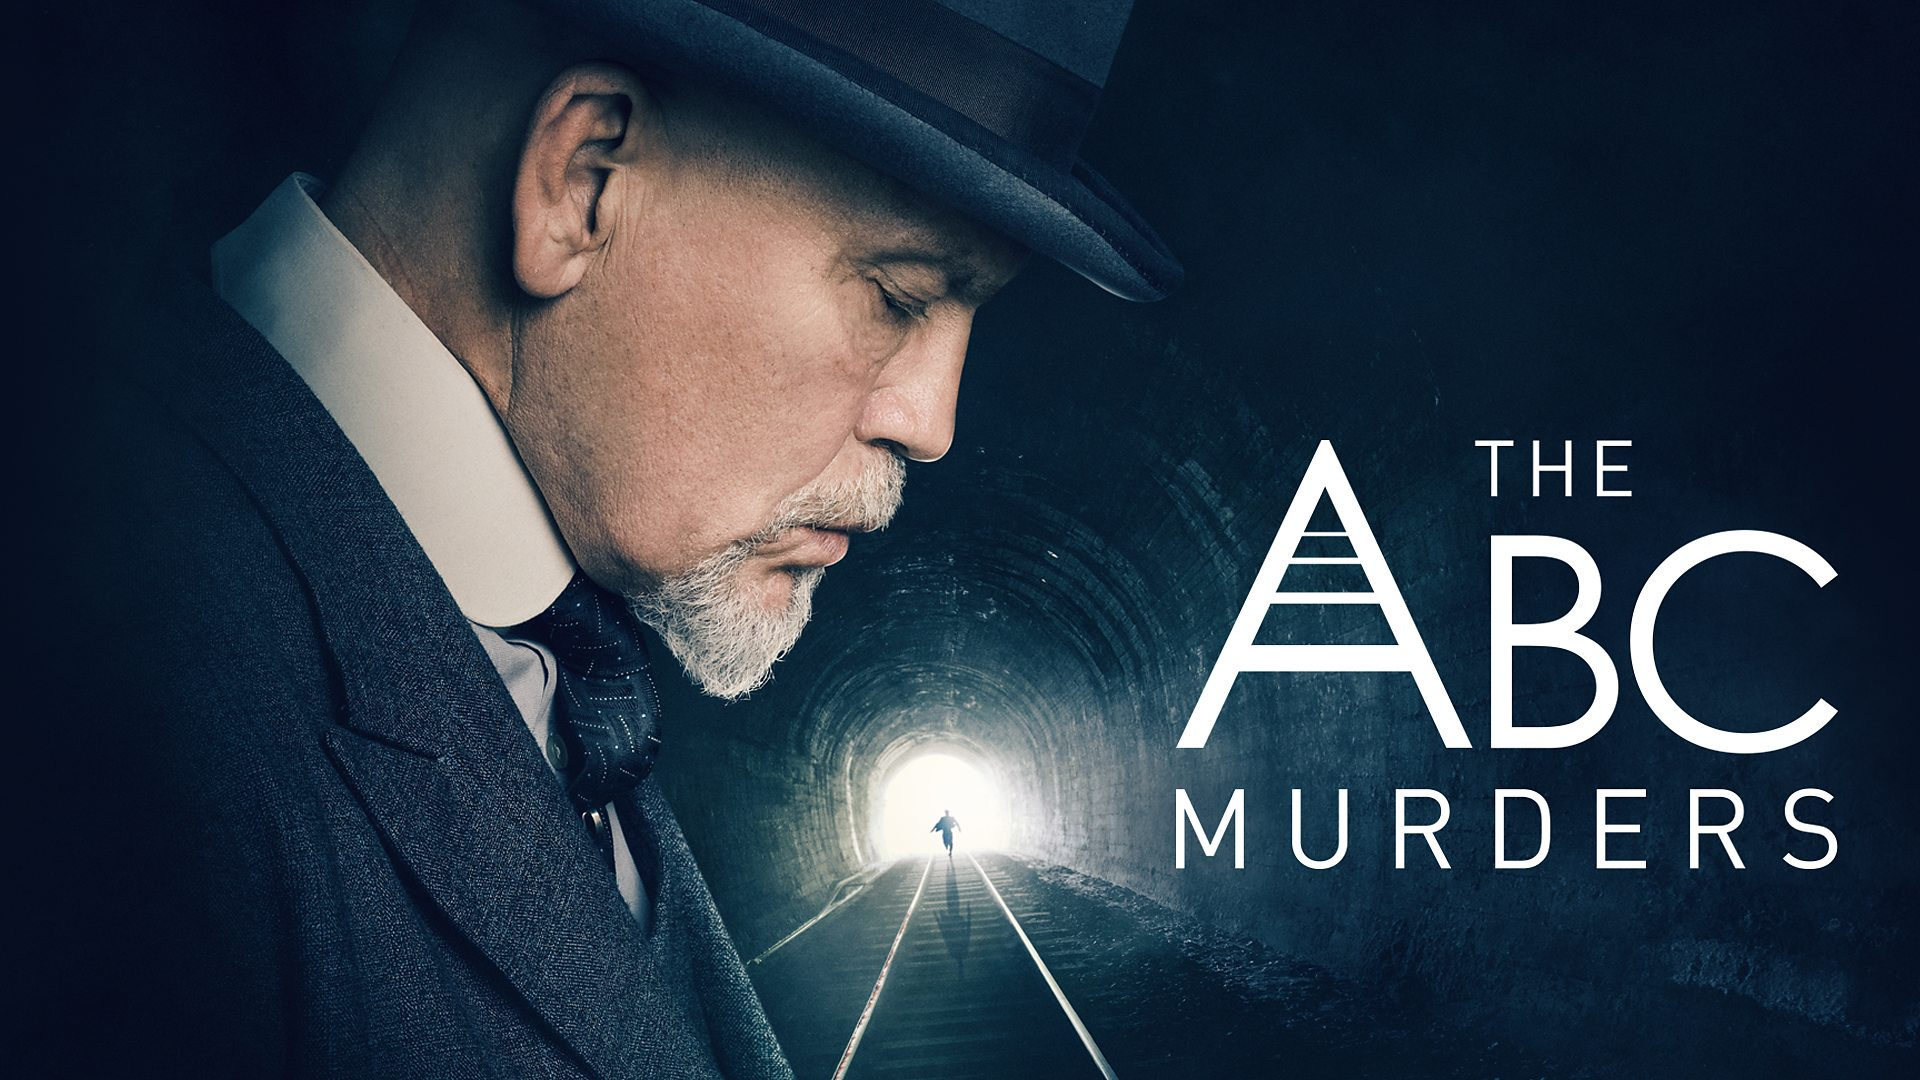 THEABCMURDERS